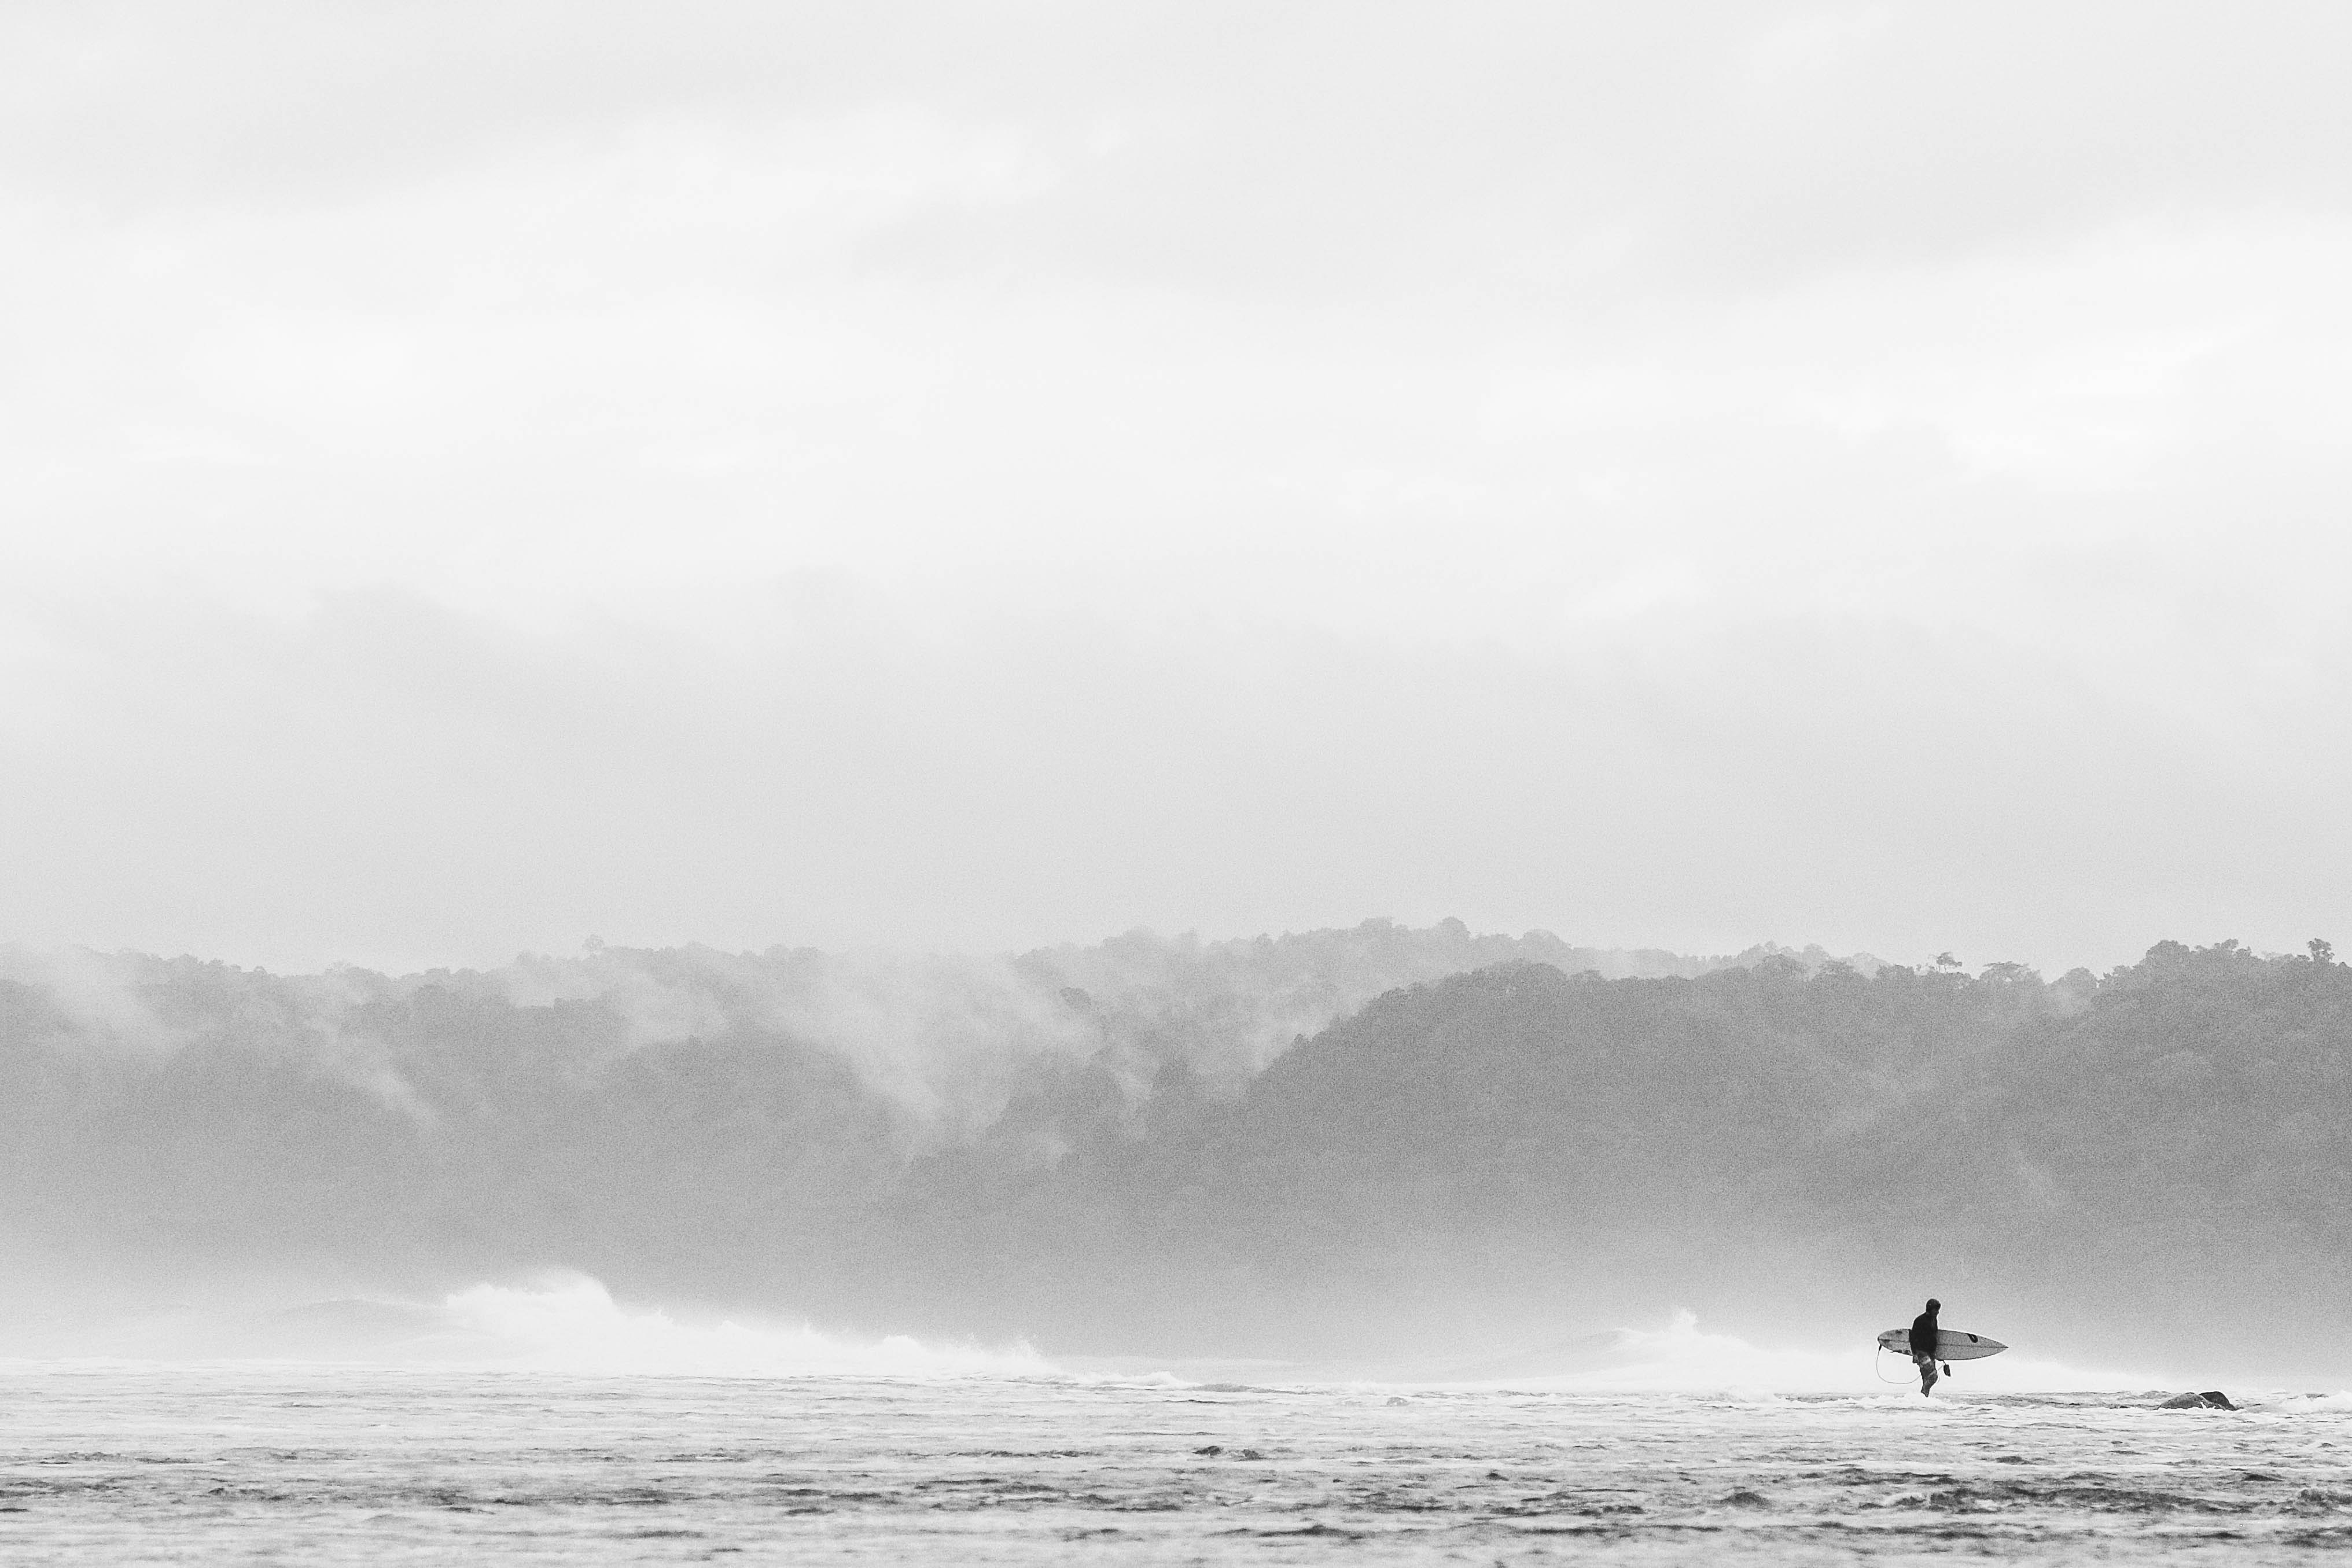 person carrying surfboard standing on the water during daytime photography